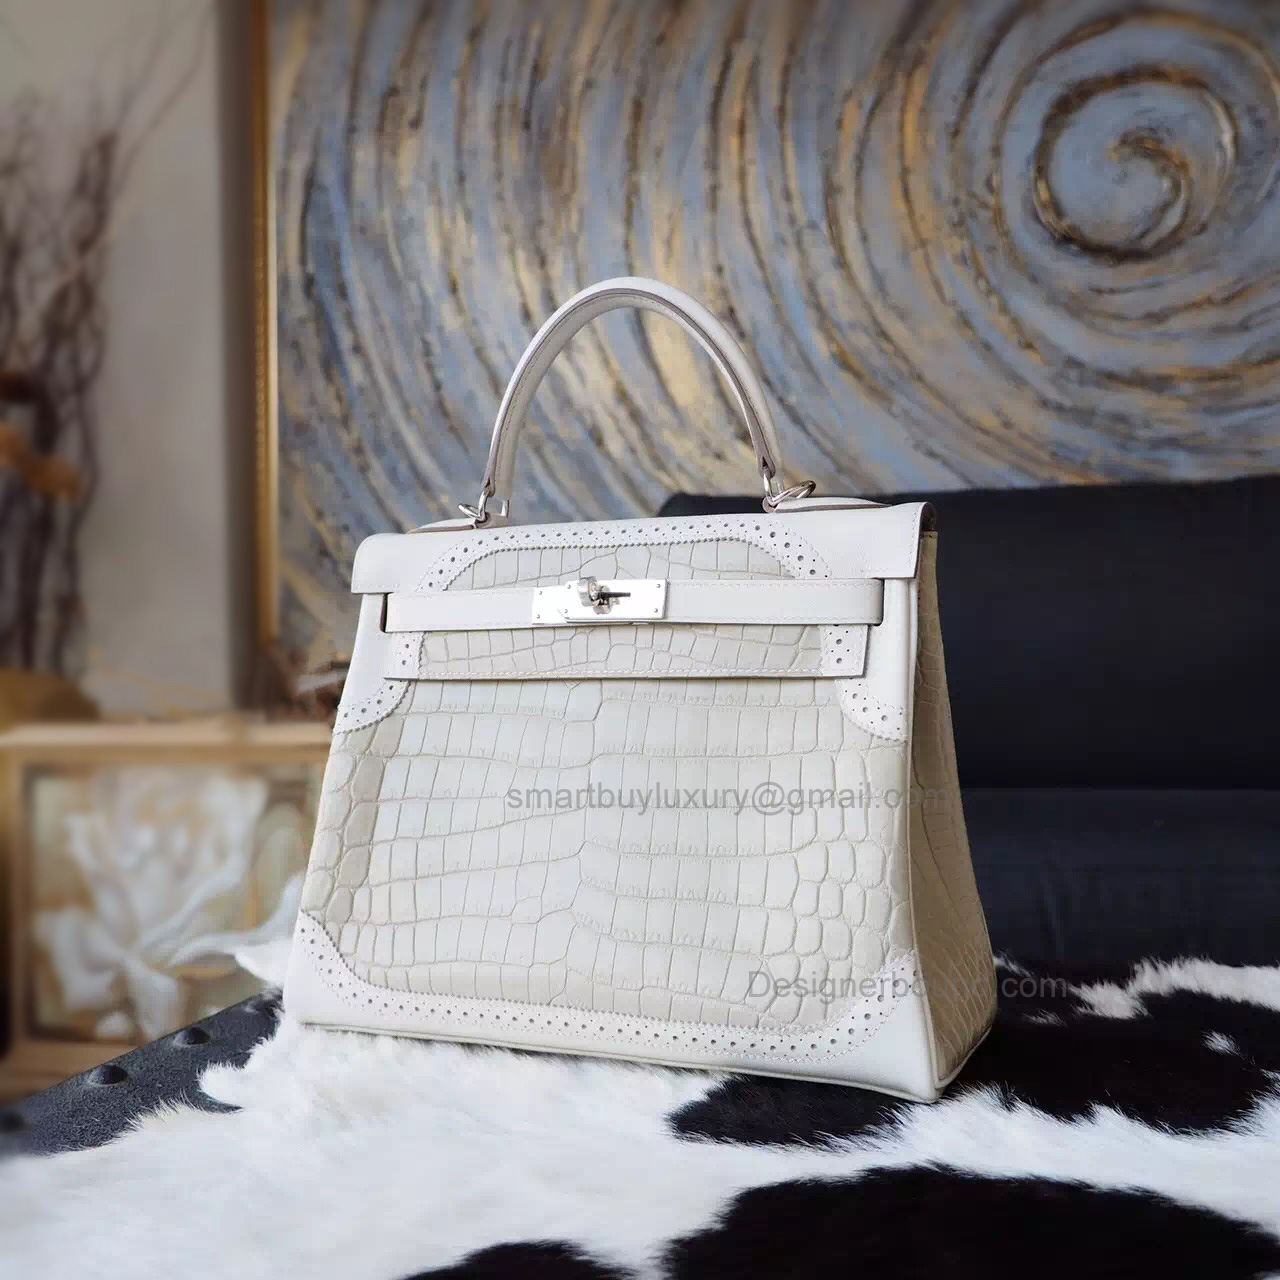 2fbb8e29bca3 Replica Hermes Kelly 28 Ghillies Bag in 8L Beton Leather GHW